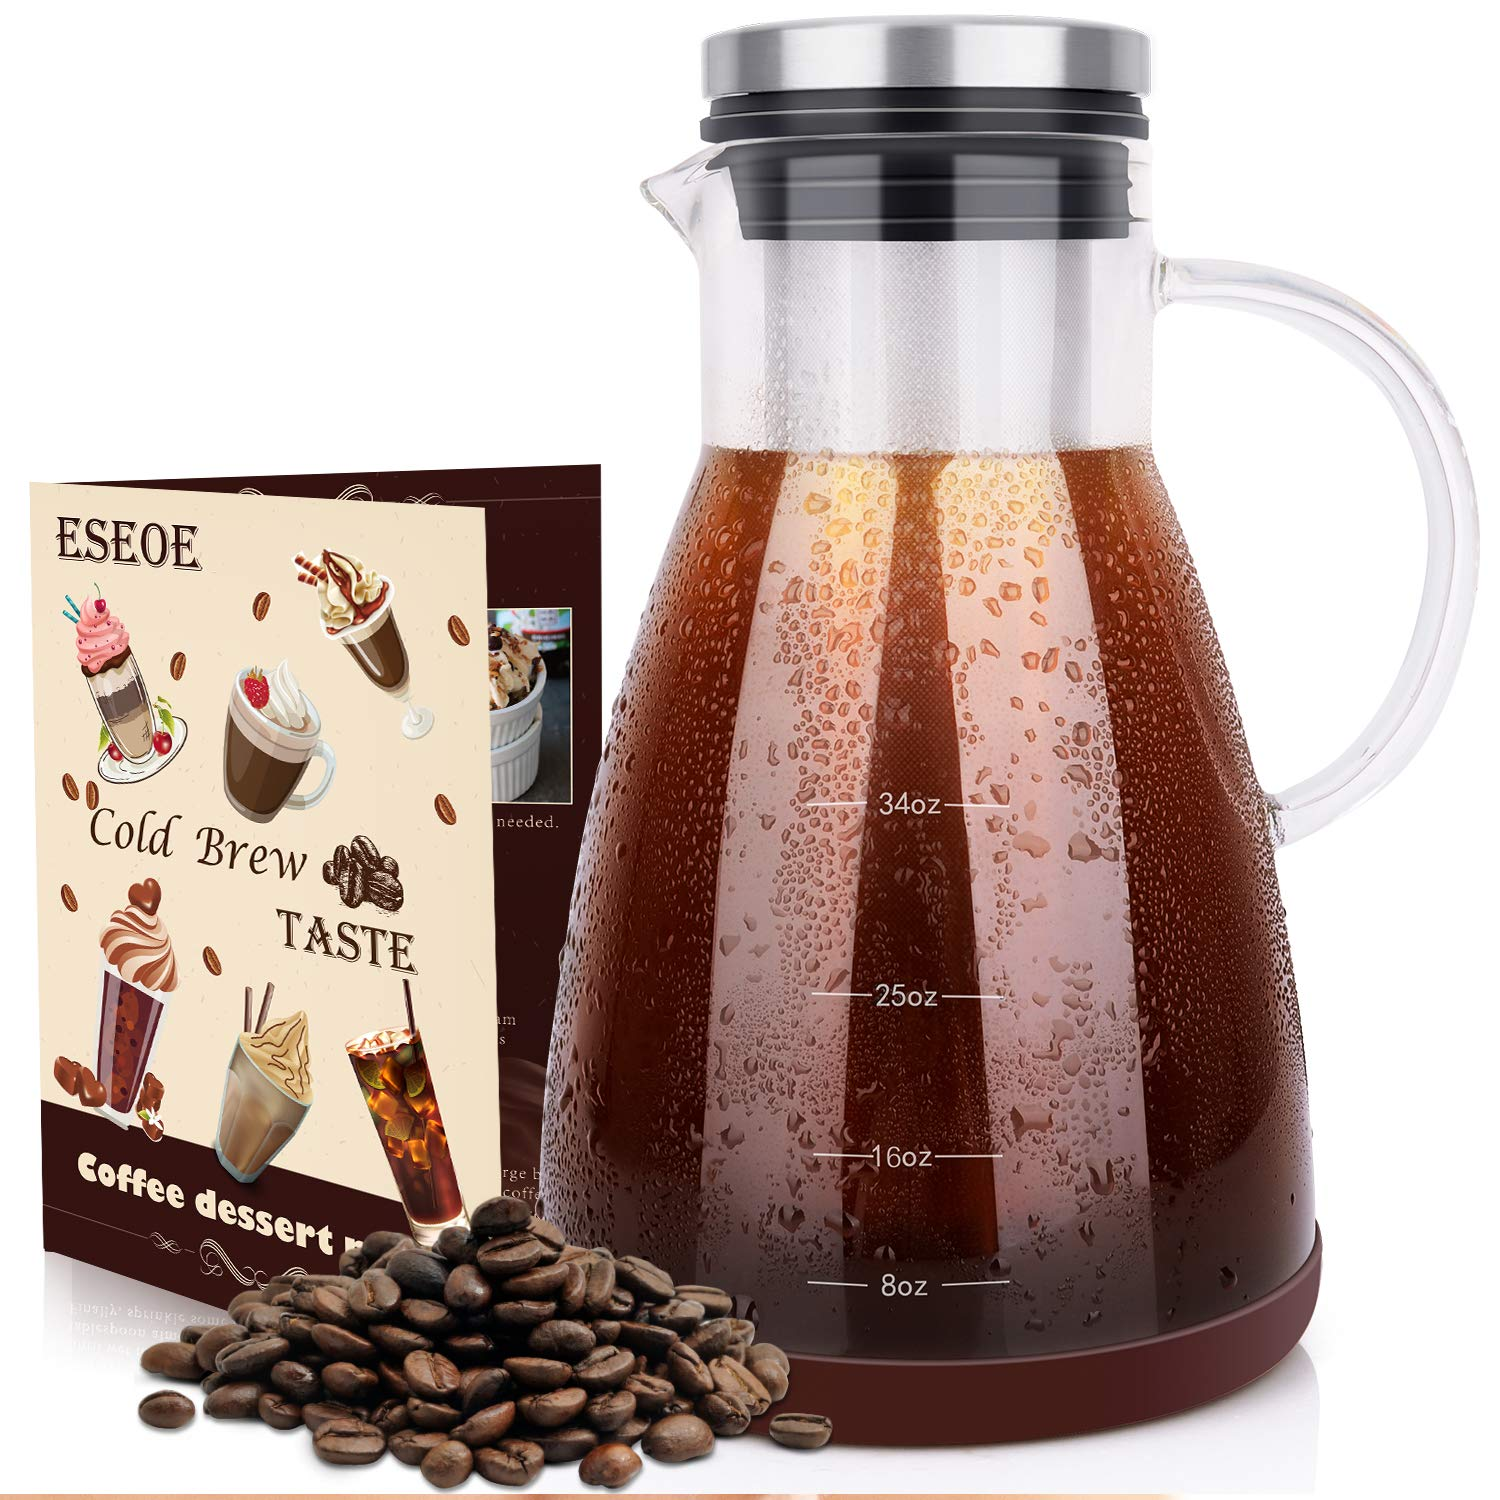 YAMA Glass YAMCDM8CBR, Brown Frame Cold Brew Drip Coffee Maker, 6-8 cup